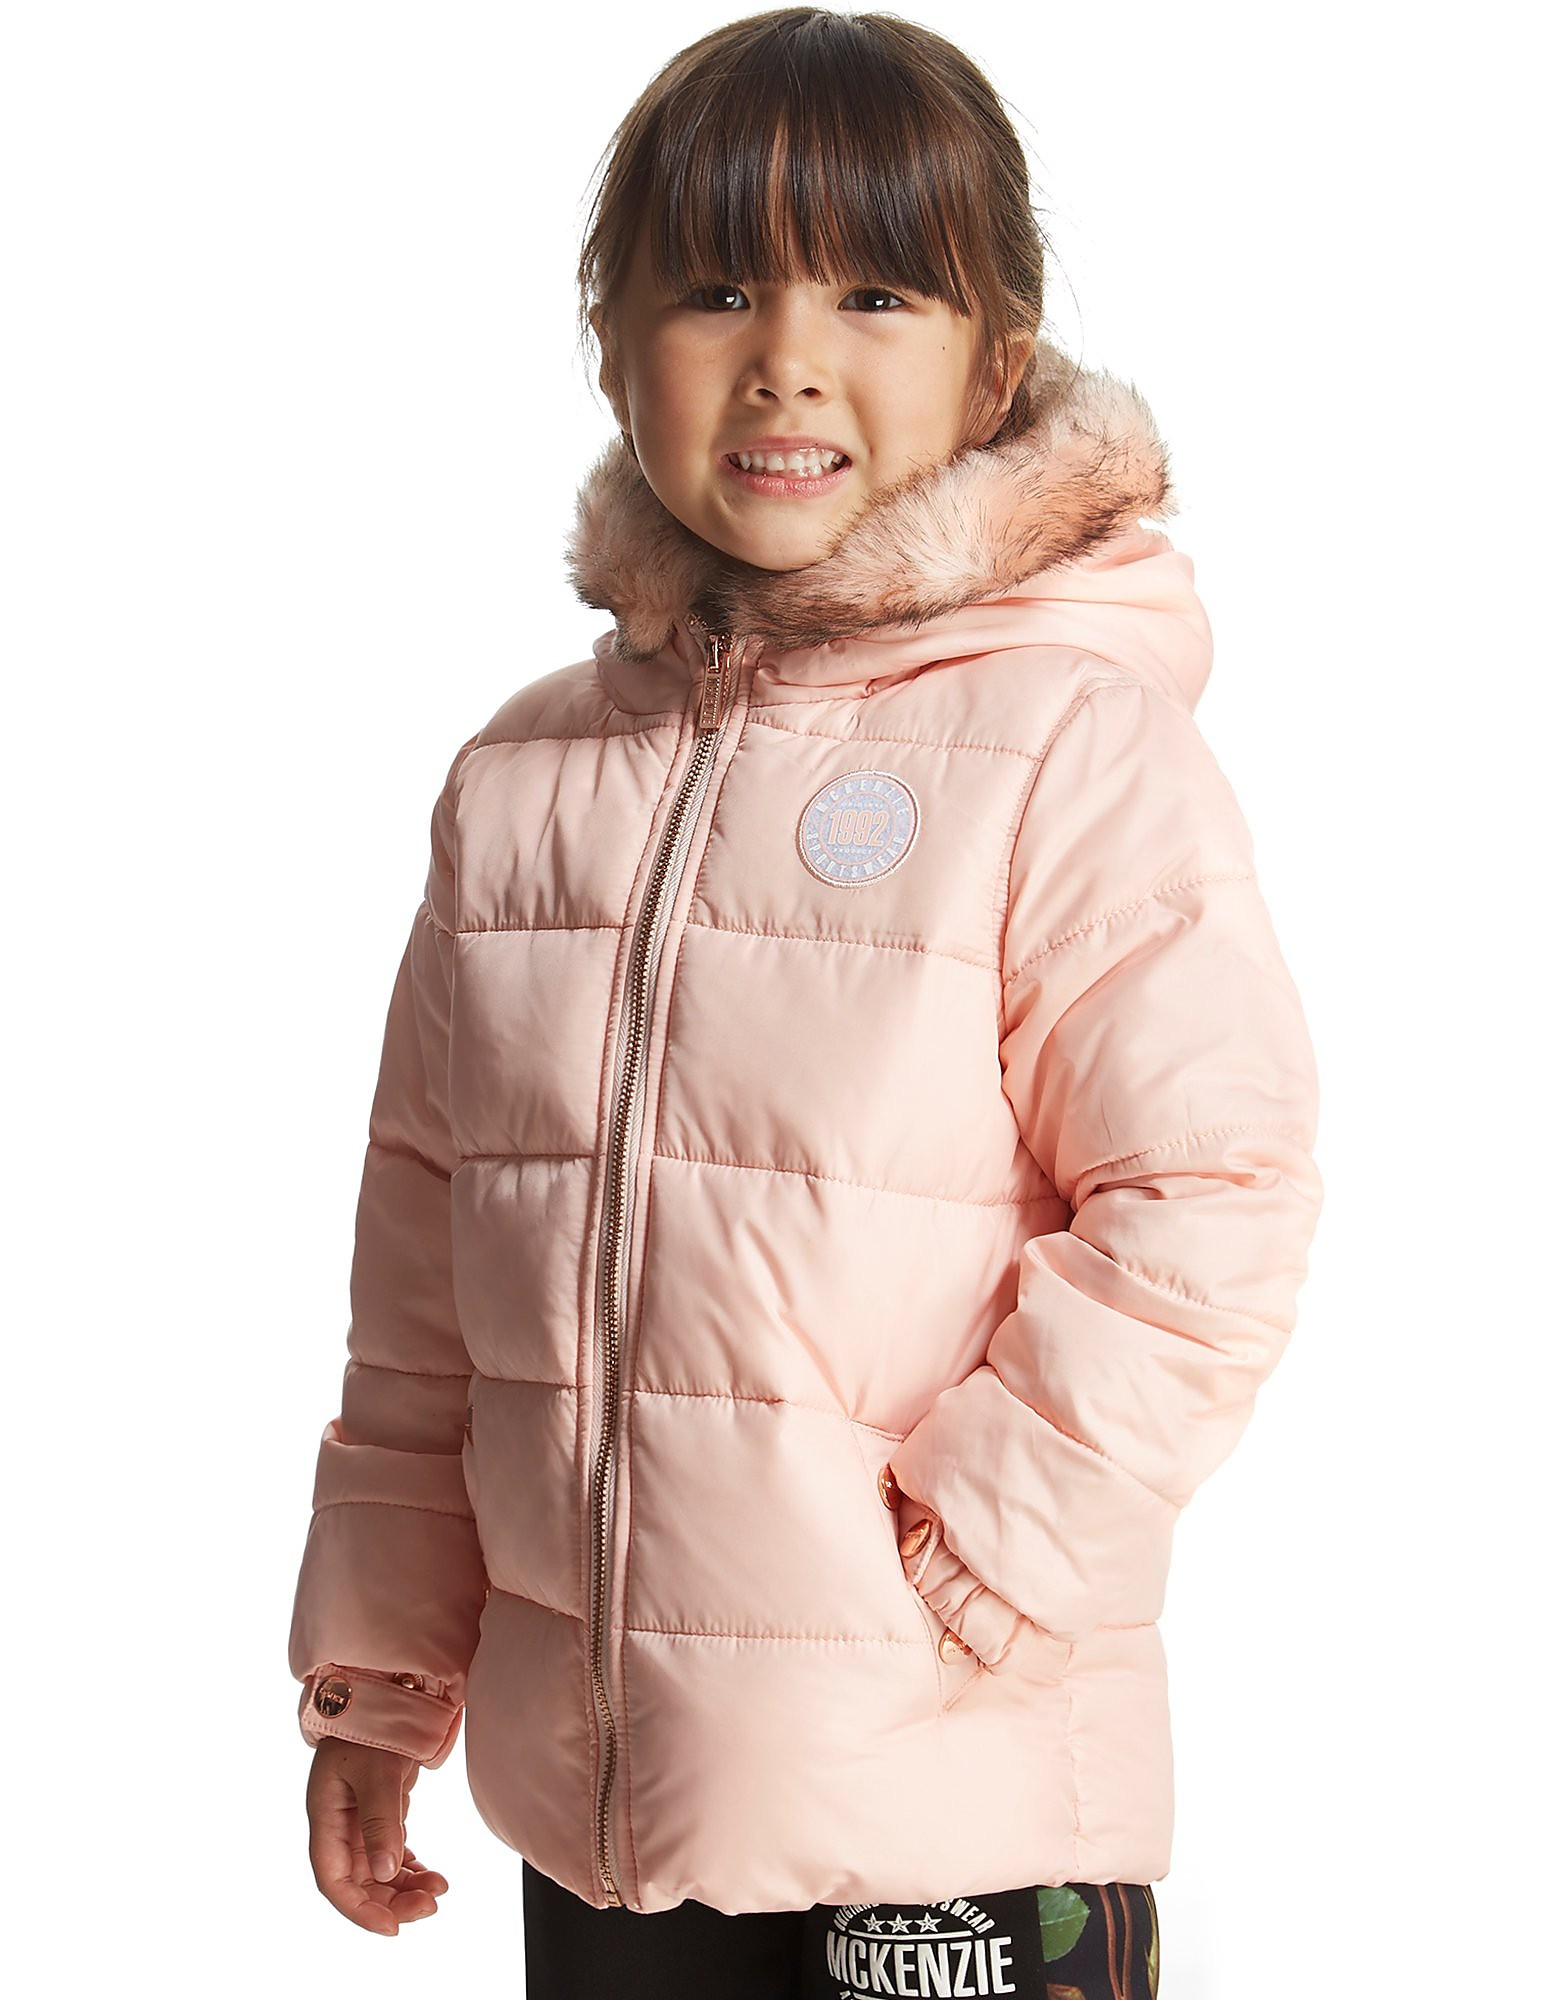 McKenzie Girls' Lottie Jacket Children